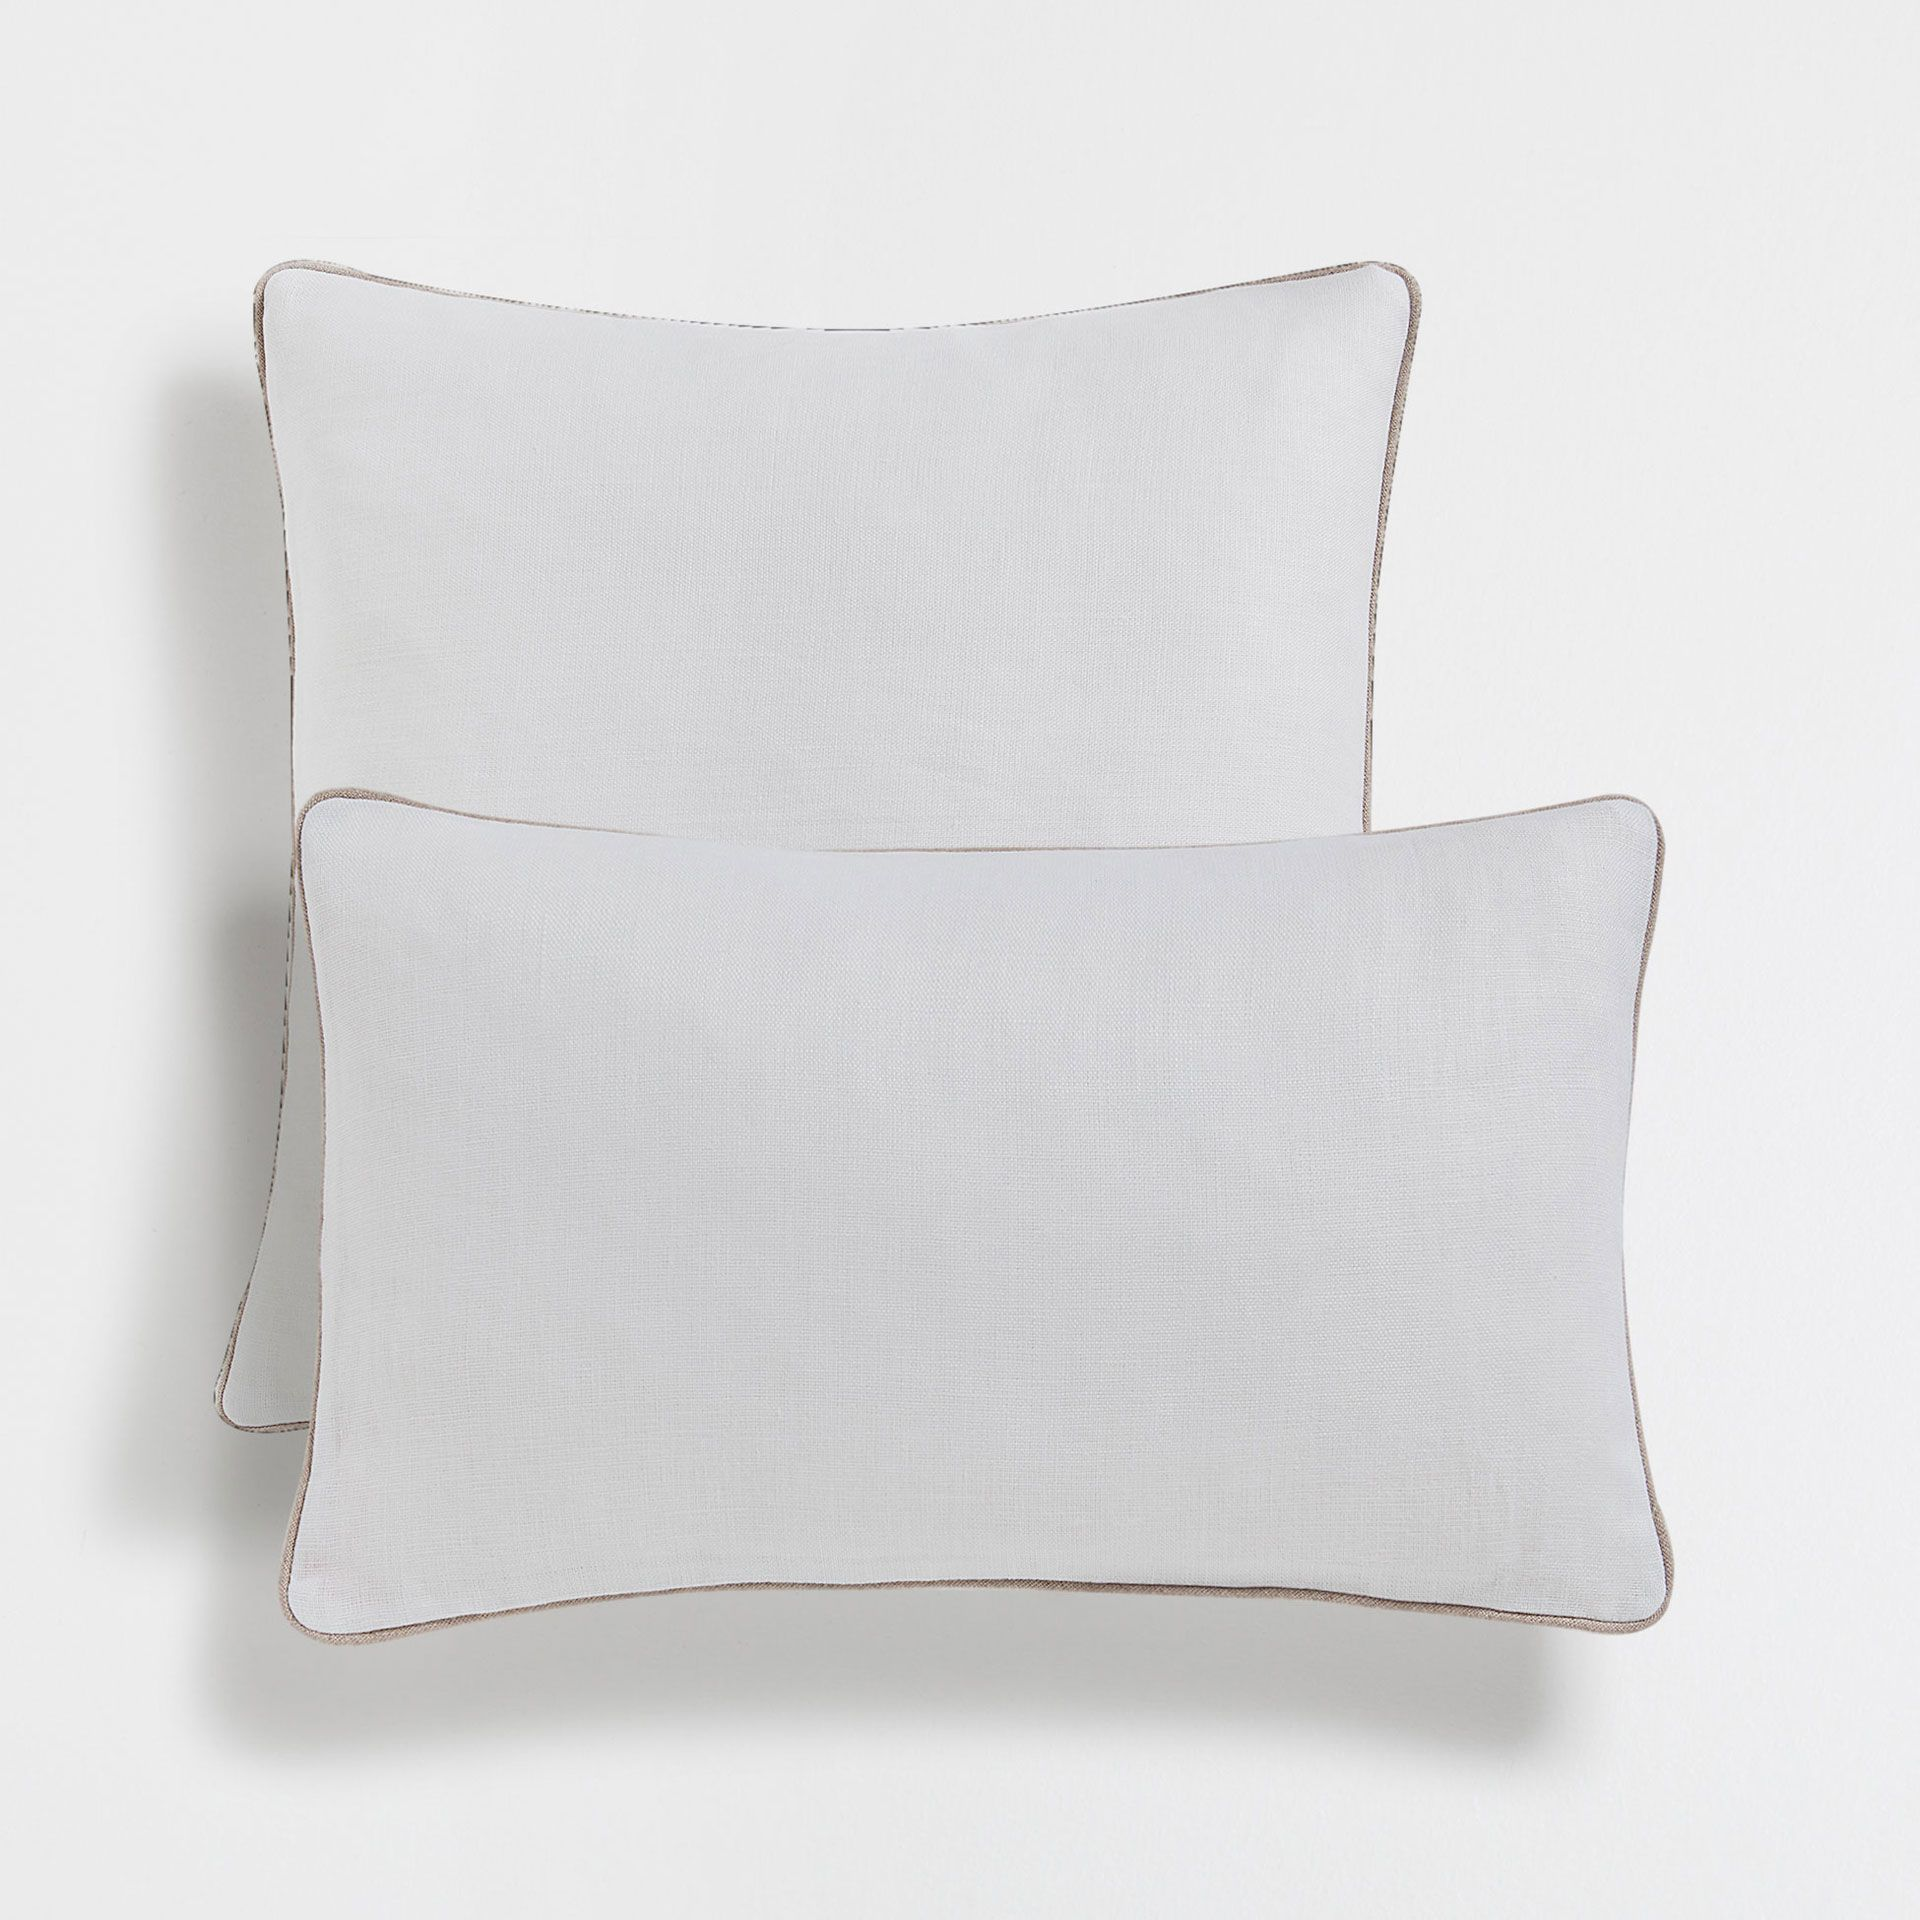 Linen Cushion Cover With Contrasting Edging Cushion Cover Cushions Zara Home